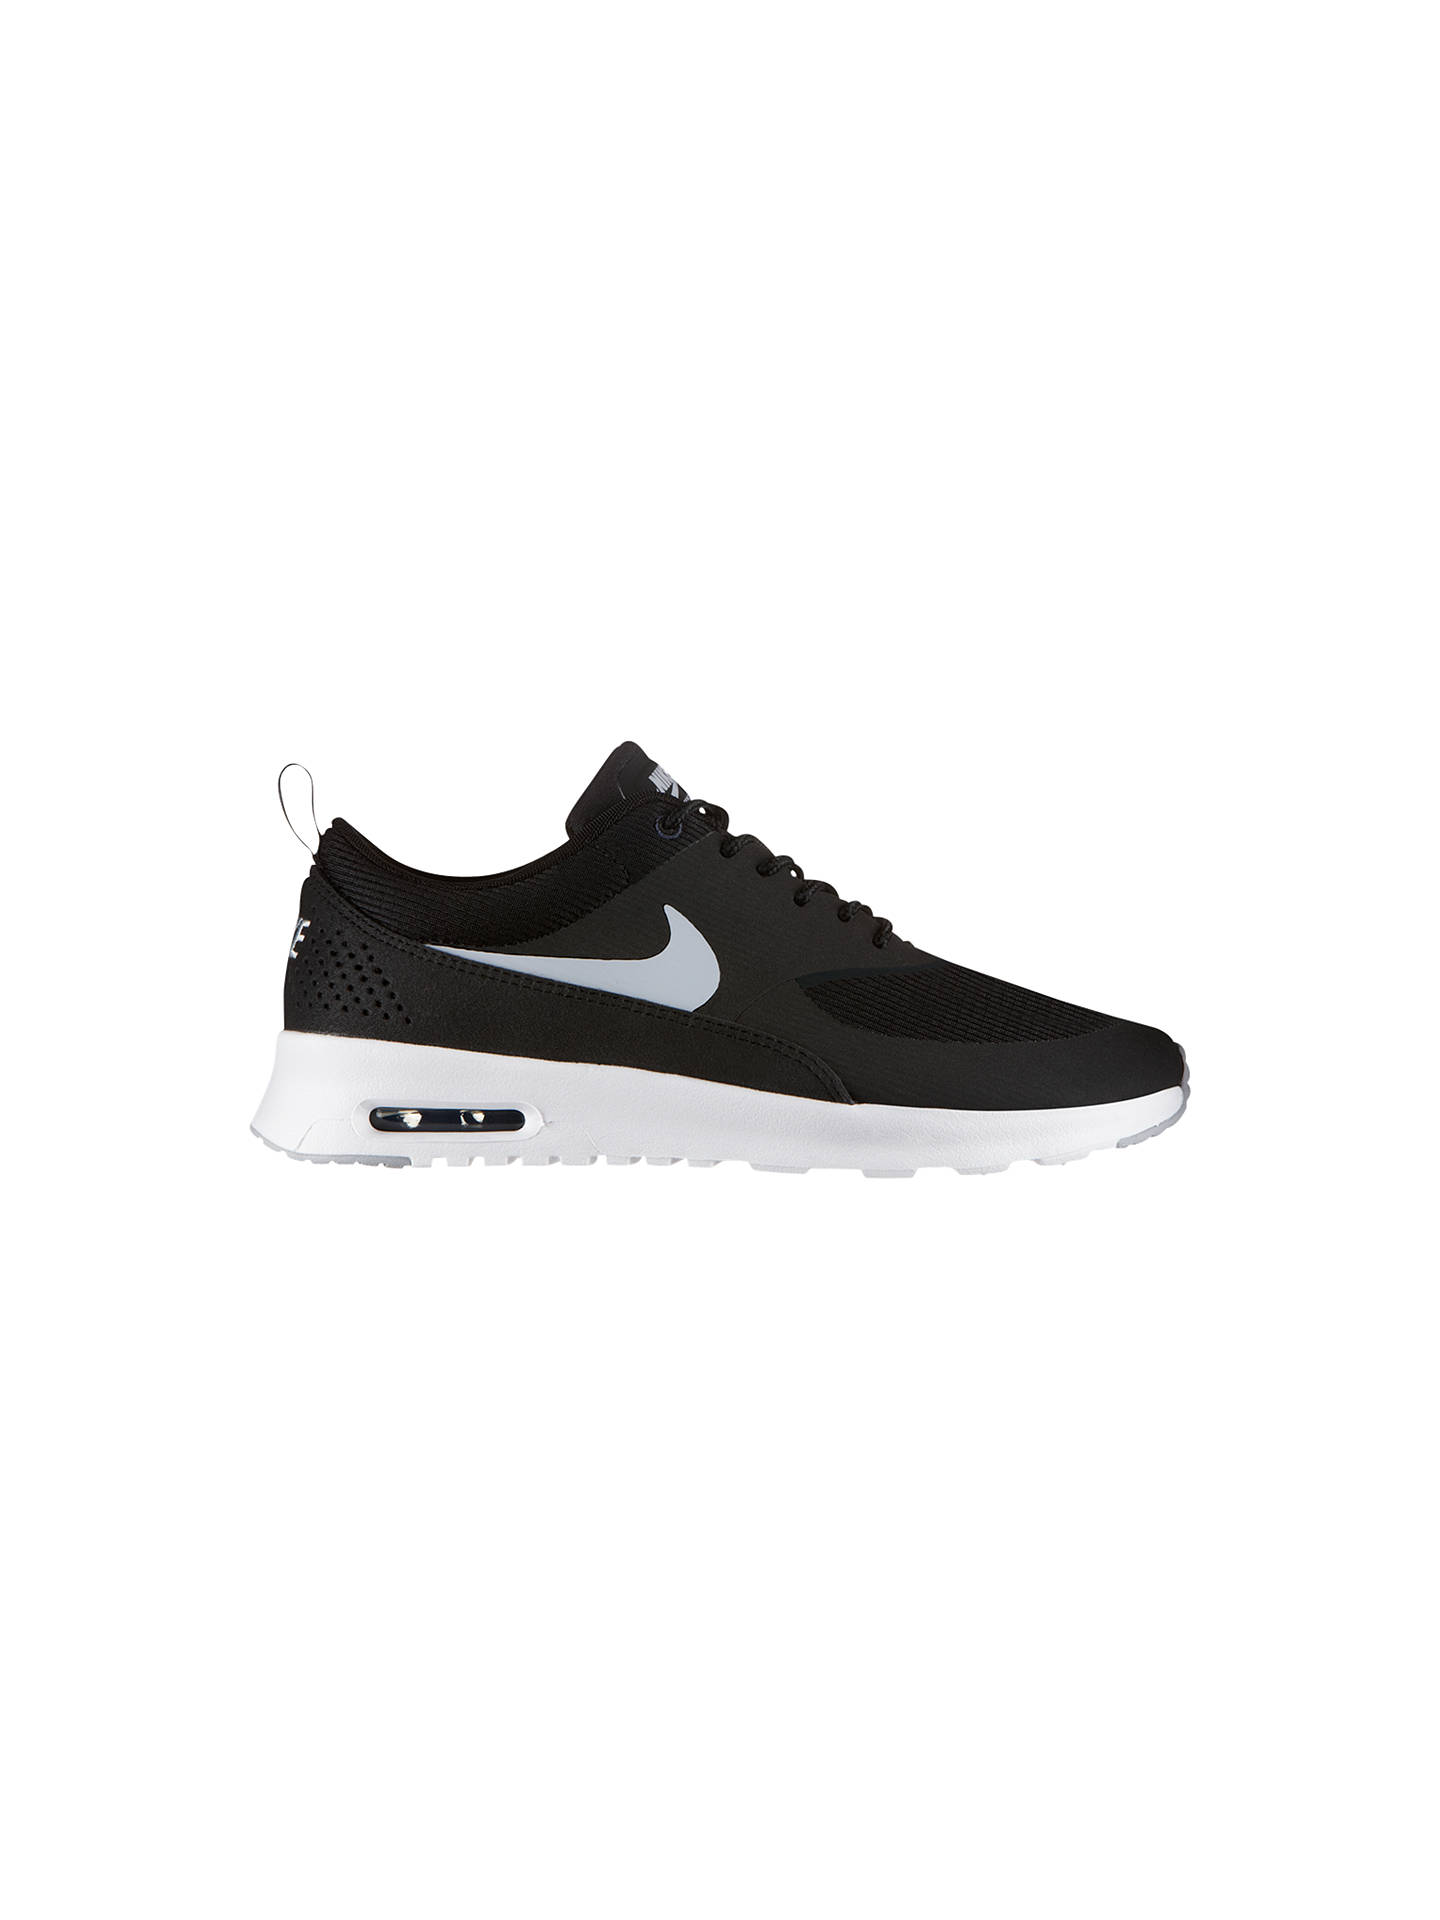 best sneakers b5f3f 60f8d Buy Nike Air Max Thea Women s Cross Trainers, Black Grey, Black Grey ...